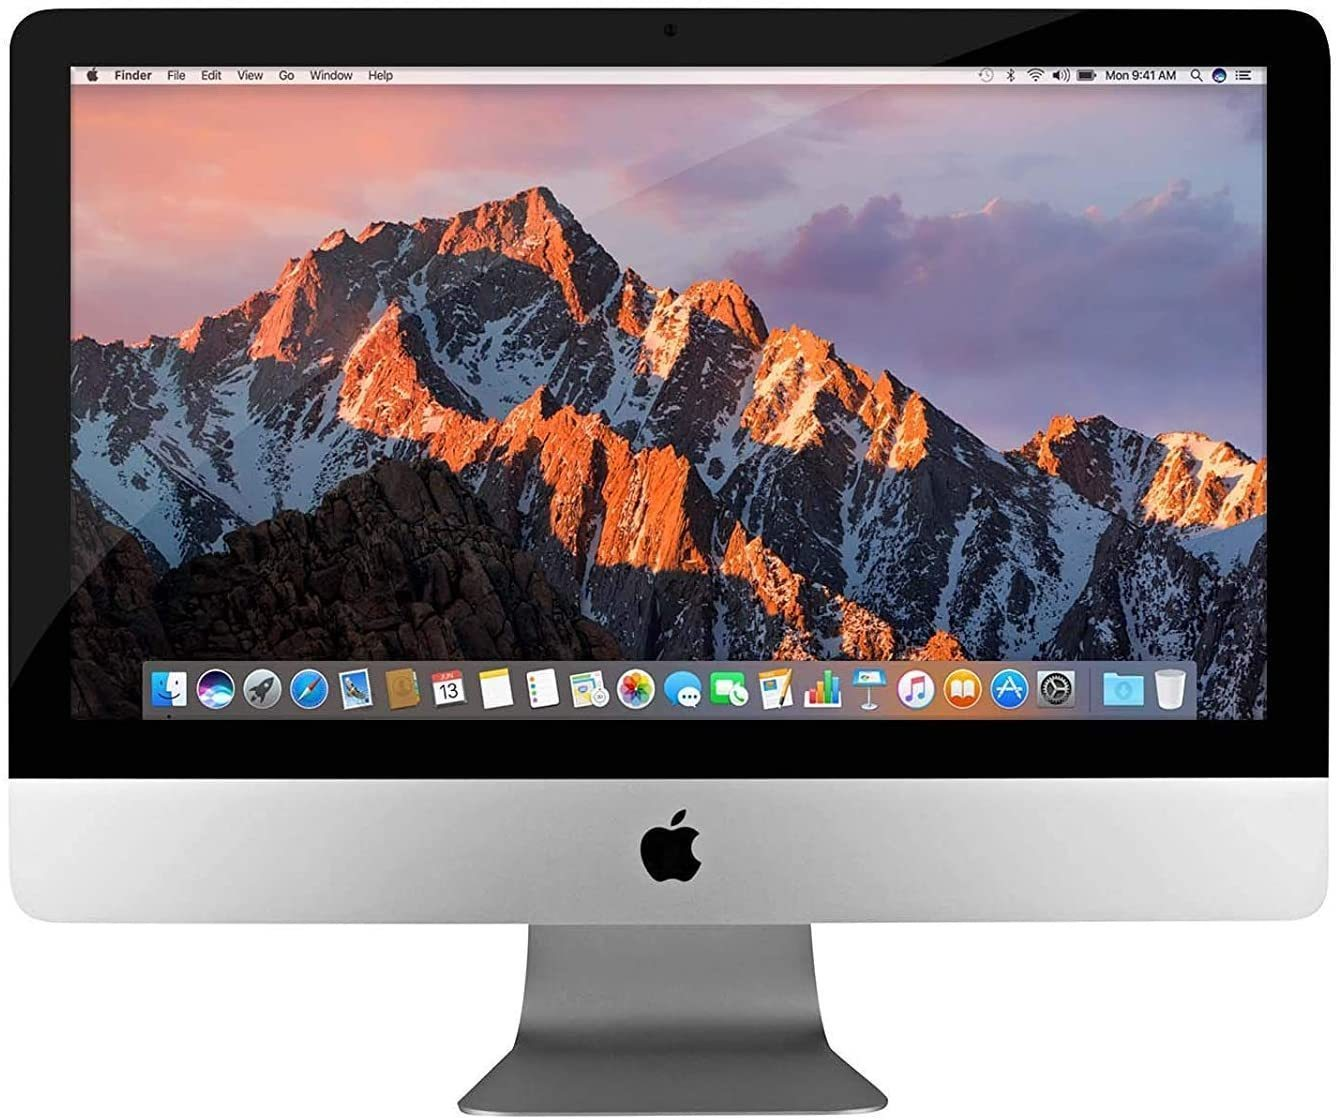 "Apple iMac A1418 Ex Lease All-in-One Desktop i5-5250U Turbo-Boost 2.7GHz 8GB RAM 1TB HDD HD GRAPHICS 6000 21.5"" Full HD 1080P WEBCAM MAC OS CATALINA"